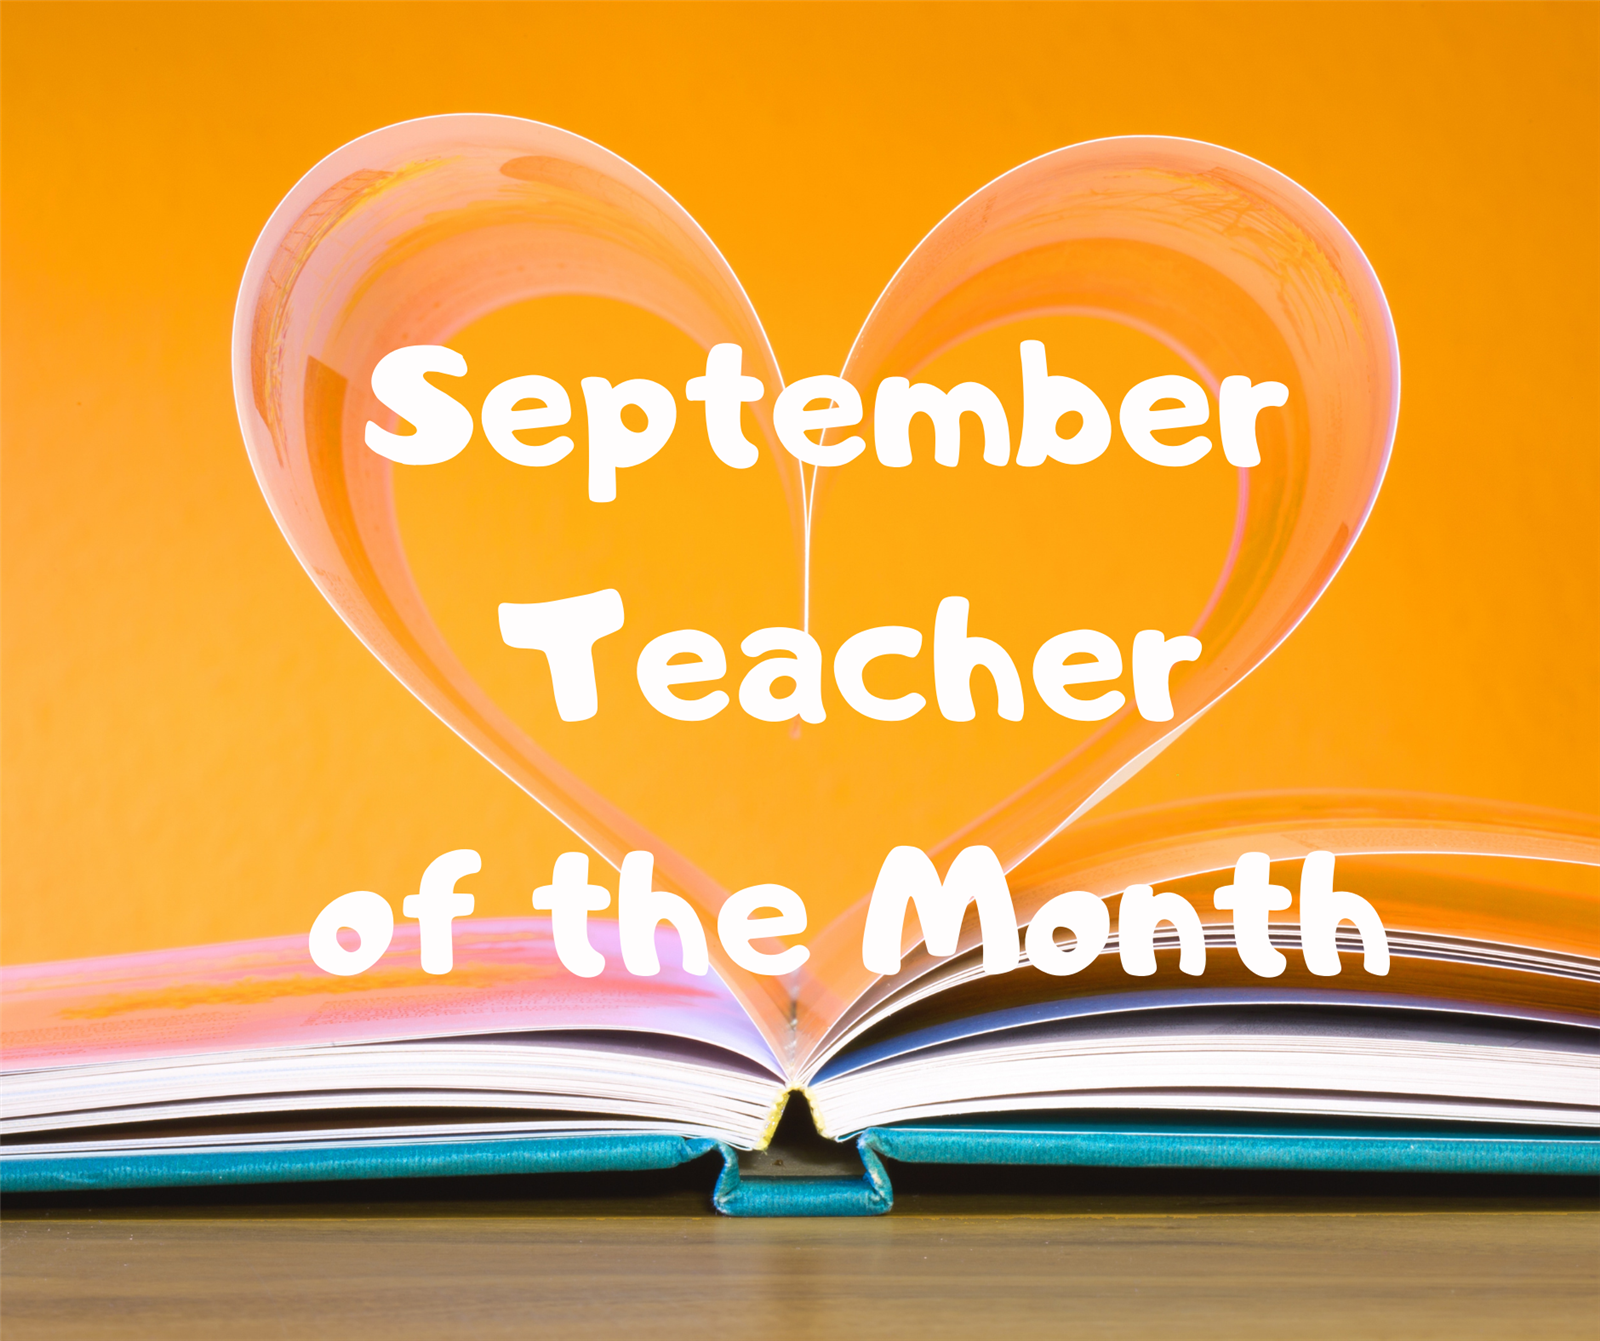 Teacher of the month on an open book with pages folded to look like a heart